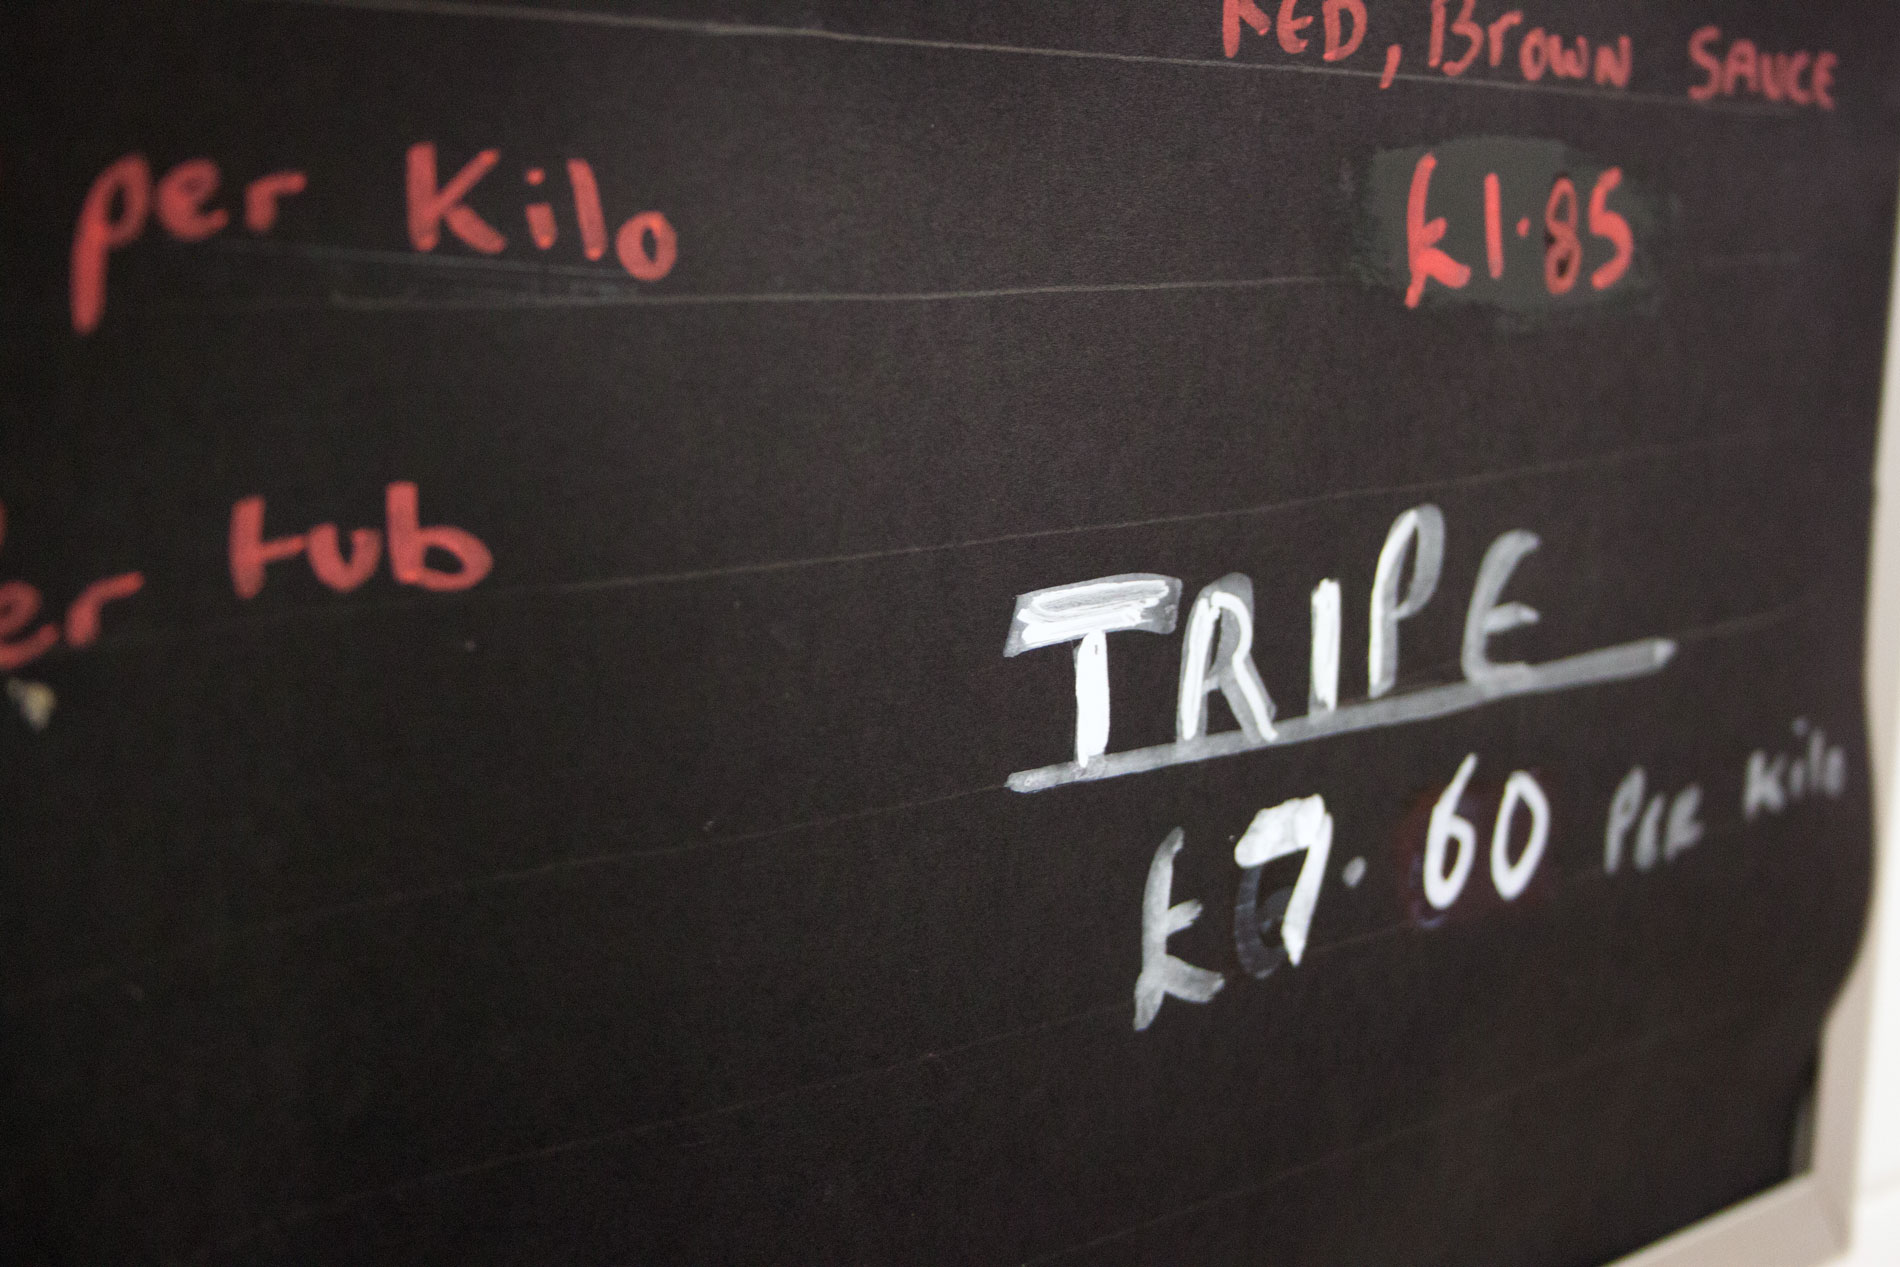 tripe-manchester-meat